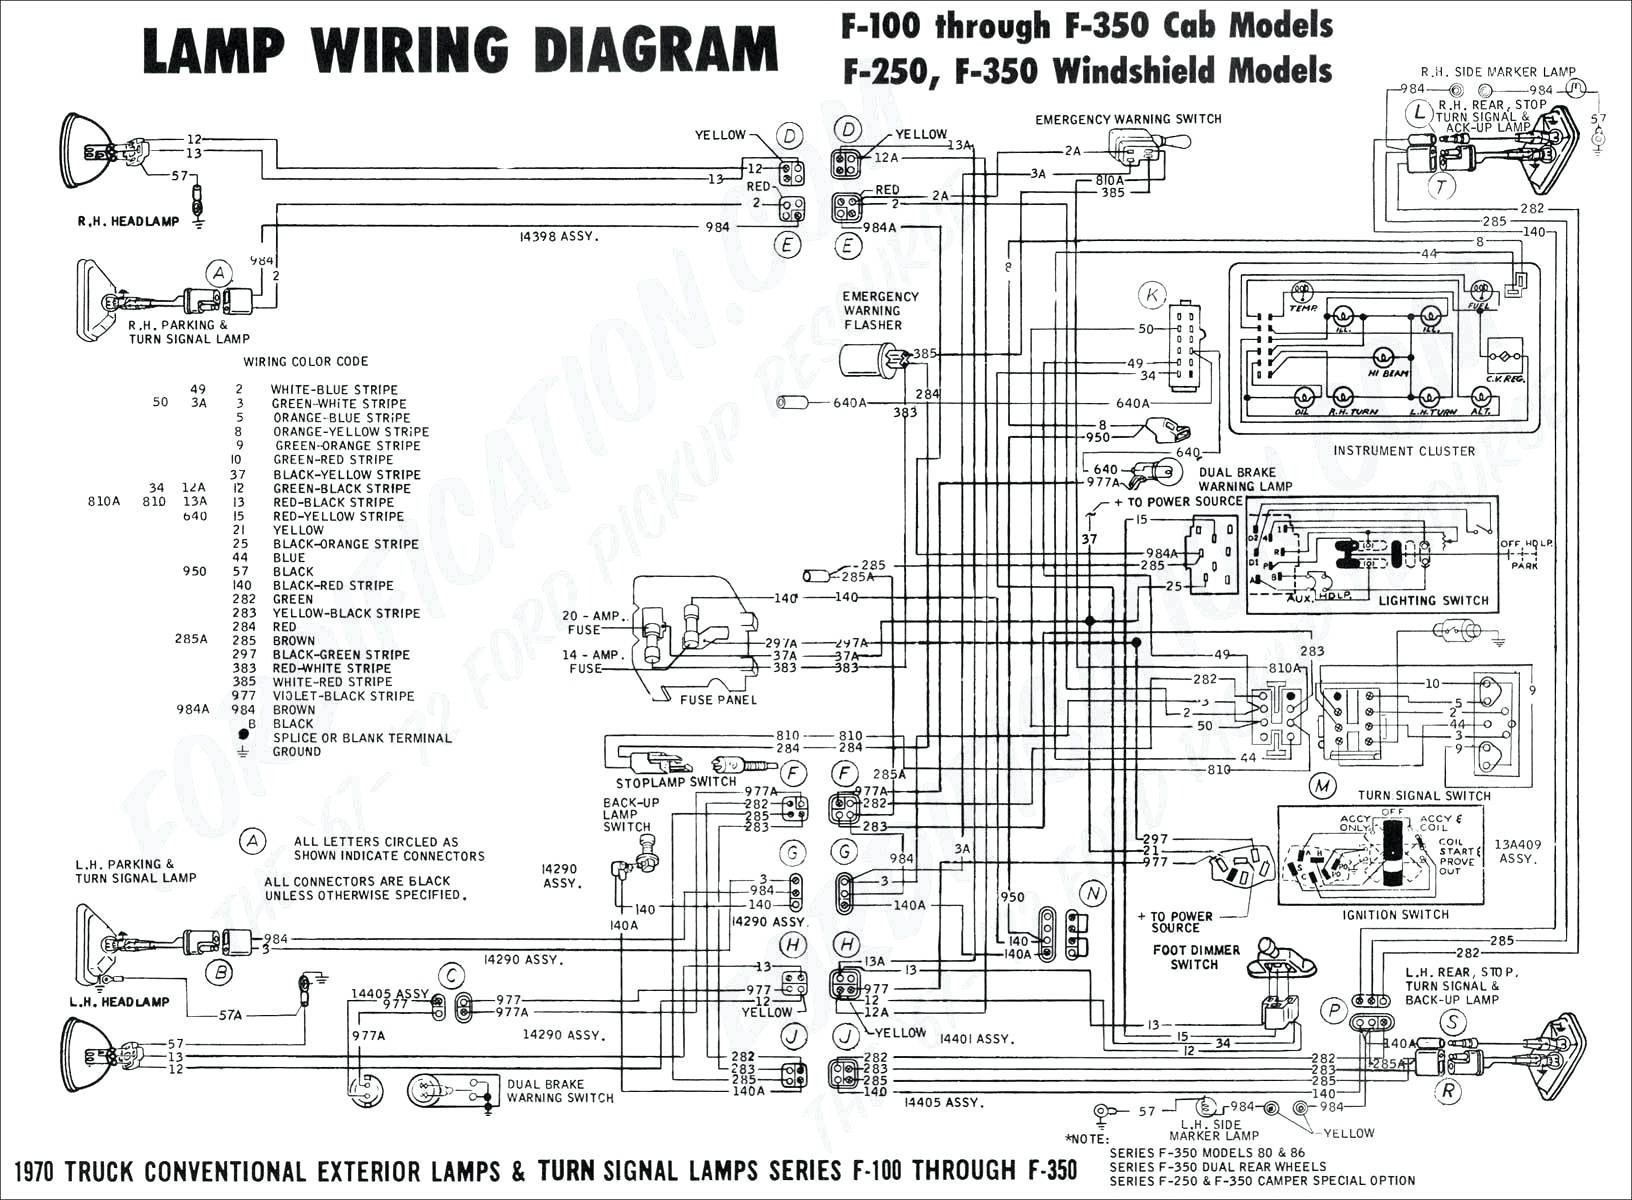 Wire Diagram for 2002 F550 Tail Lights 2001 F350 Wiring Diagram Wiring Diagram Data Of Wire Diagram for 2002 F550 Tail Lights 2001 F350 Wiring Diagram Wiring Diagram Data